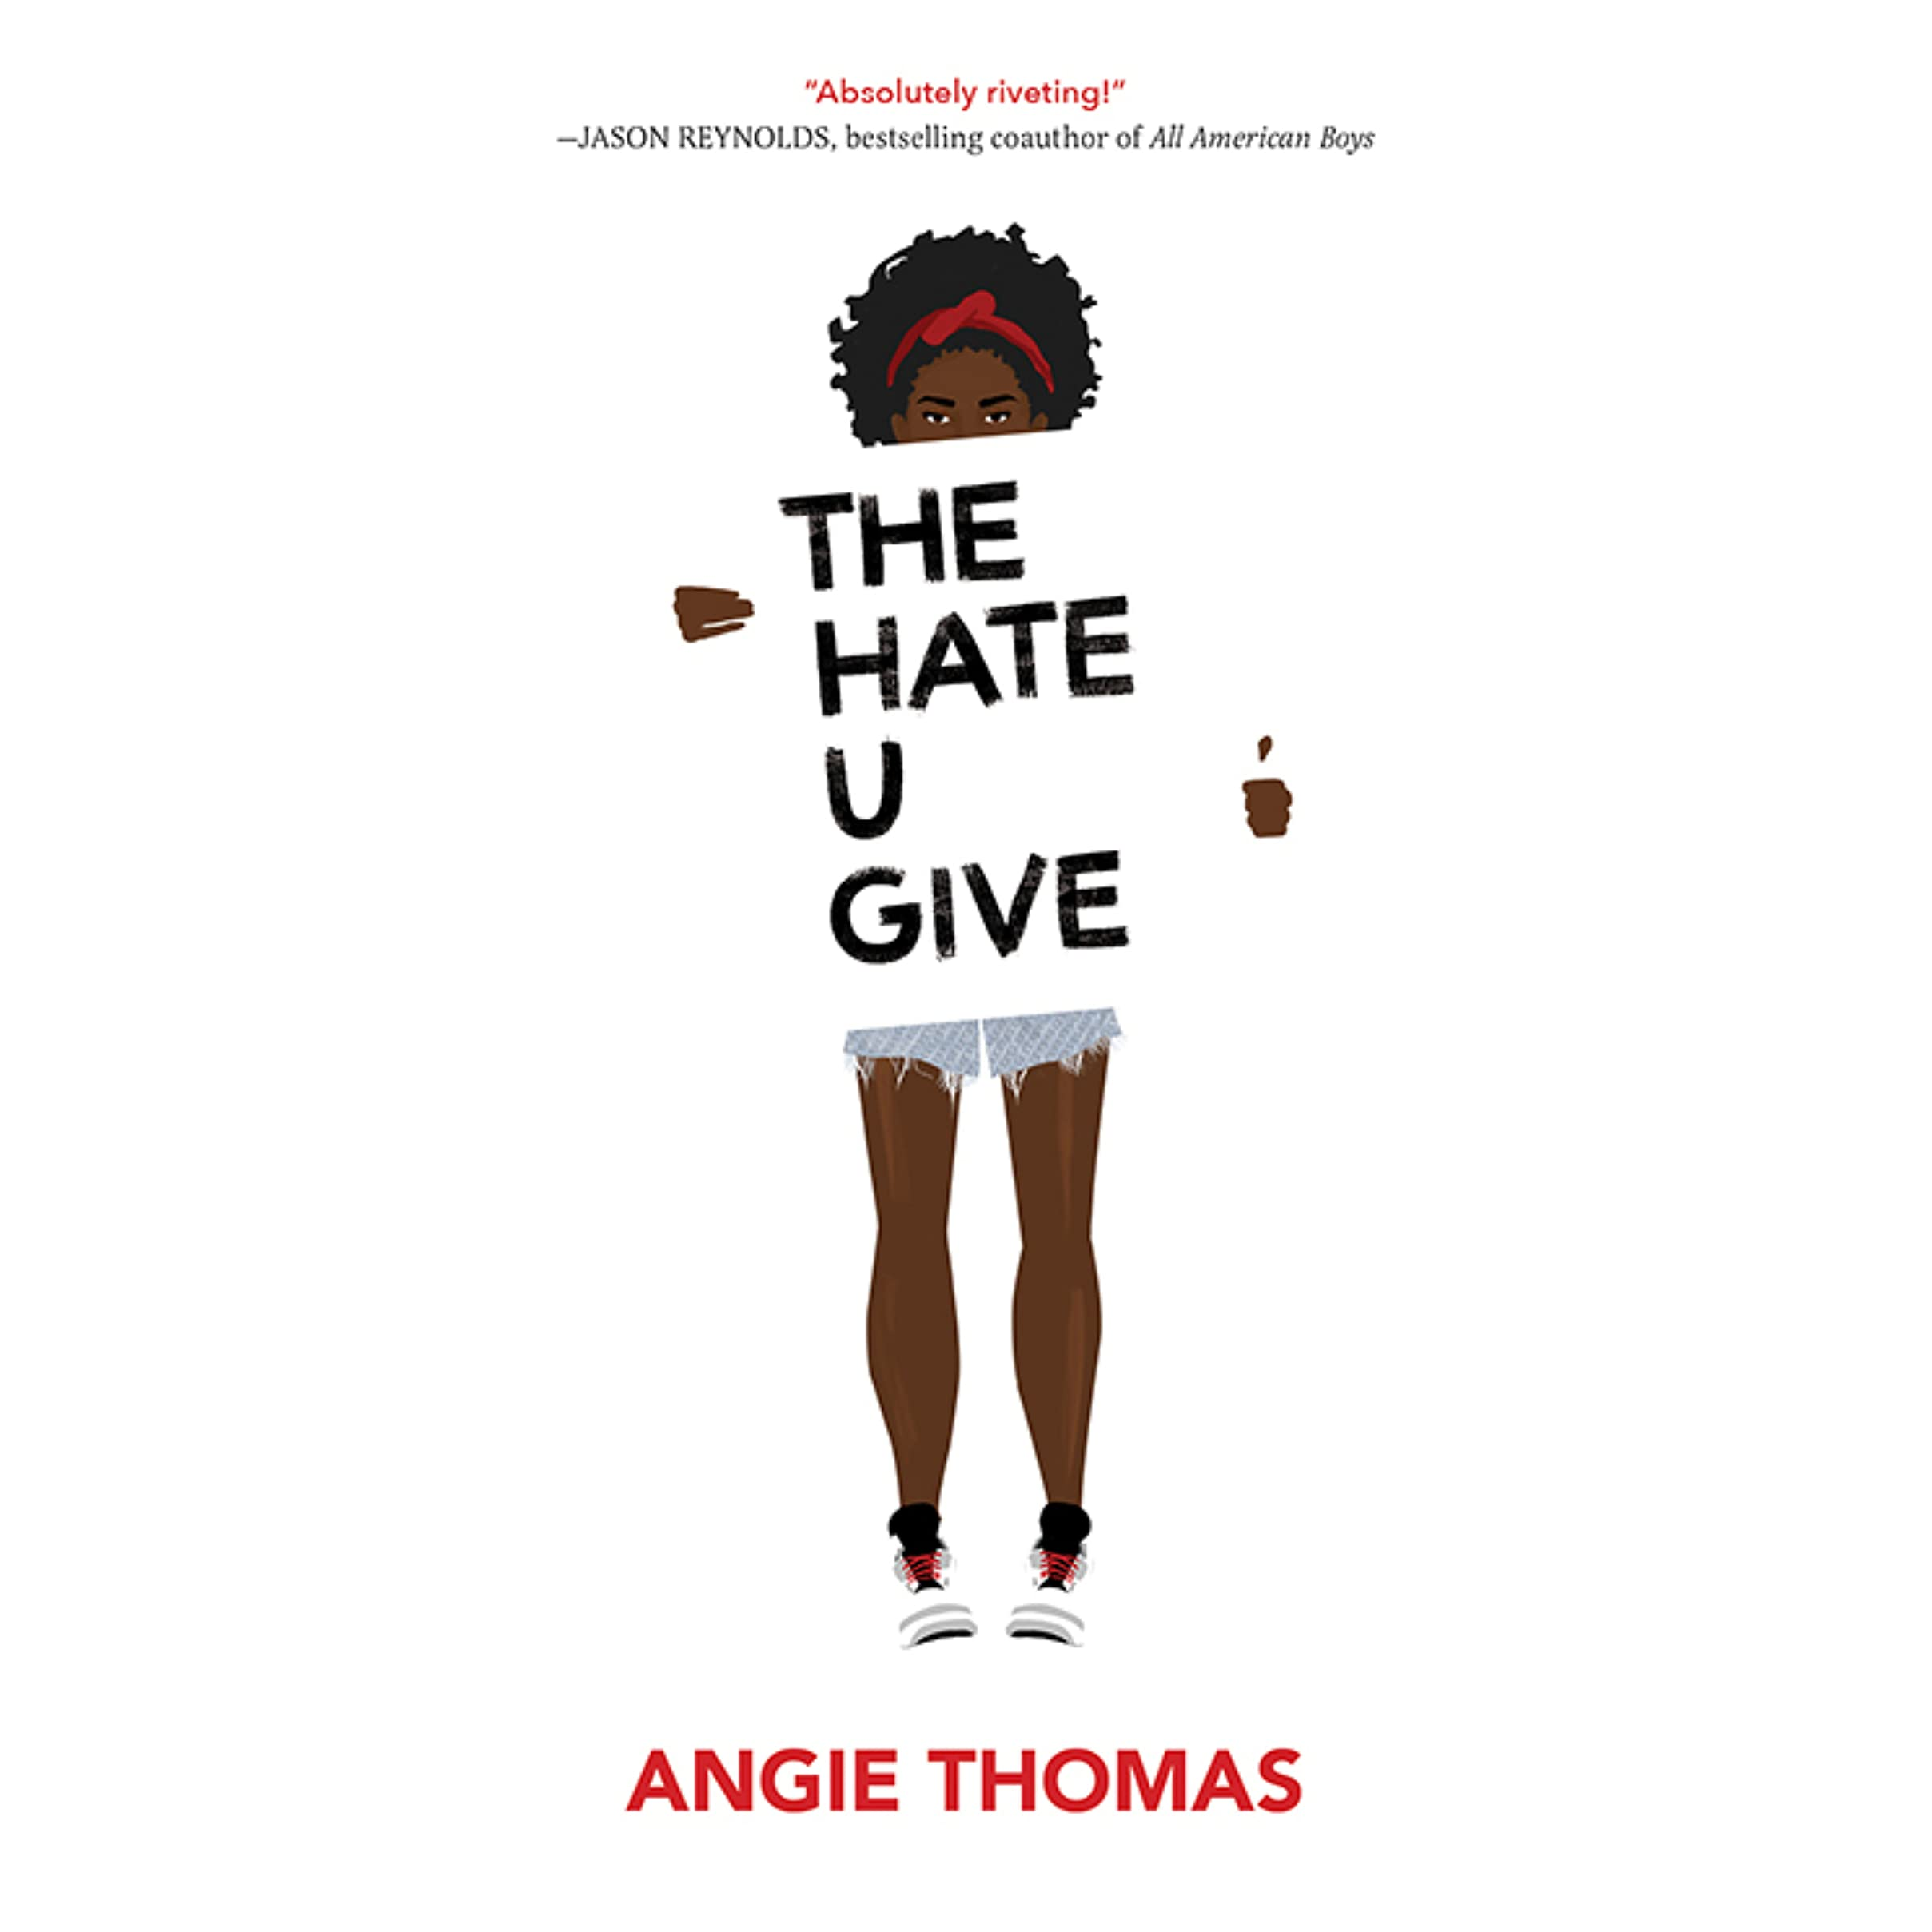 The Hate U Give (The Hate U Give, #1) by Angie Thomas